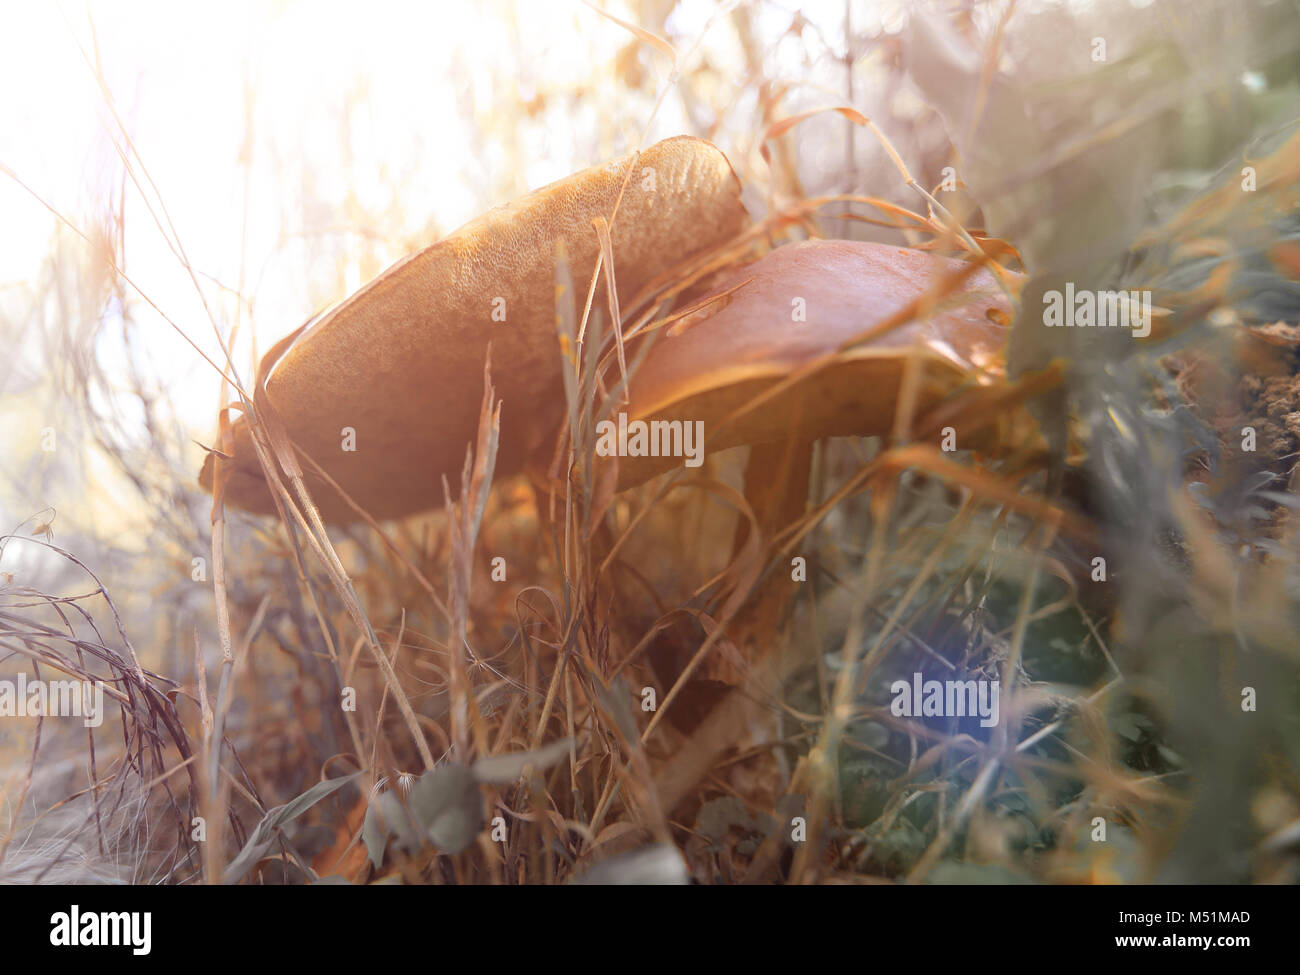 mushrooms grow in a forest glade - Stock Image